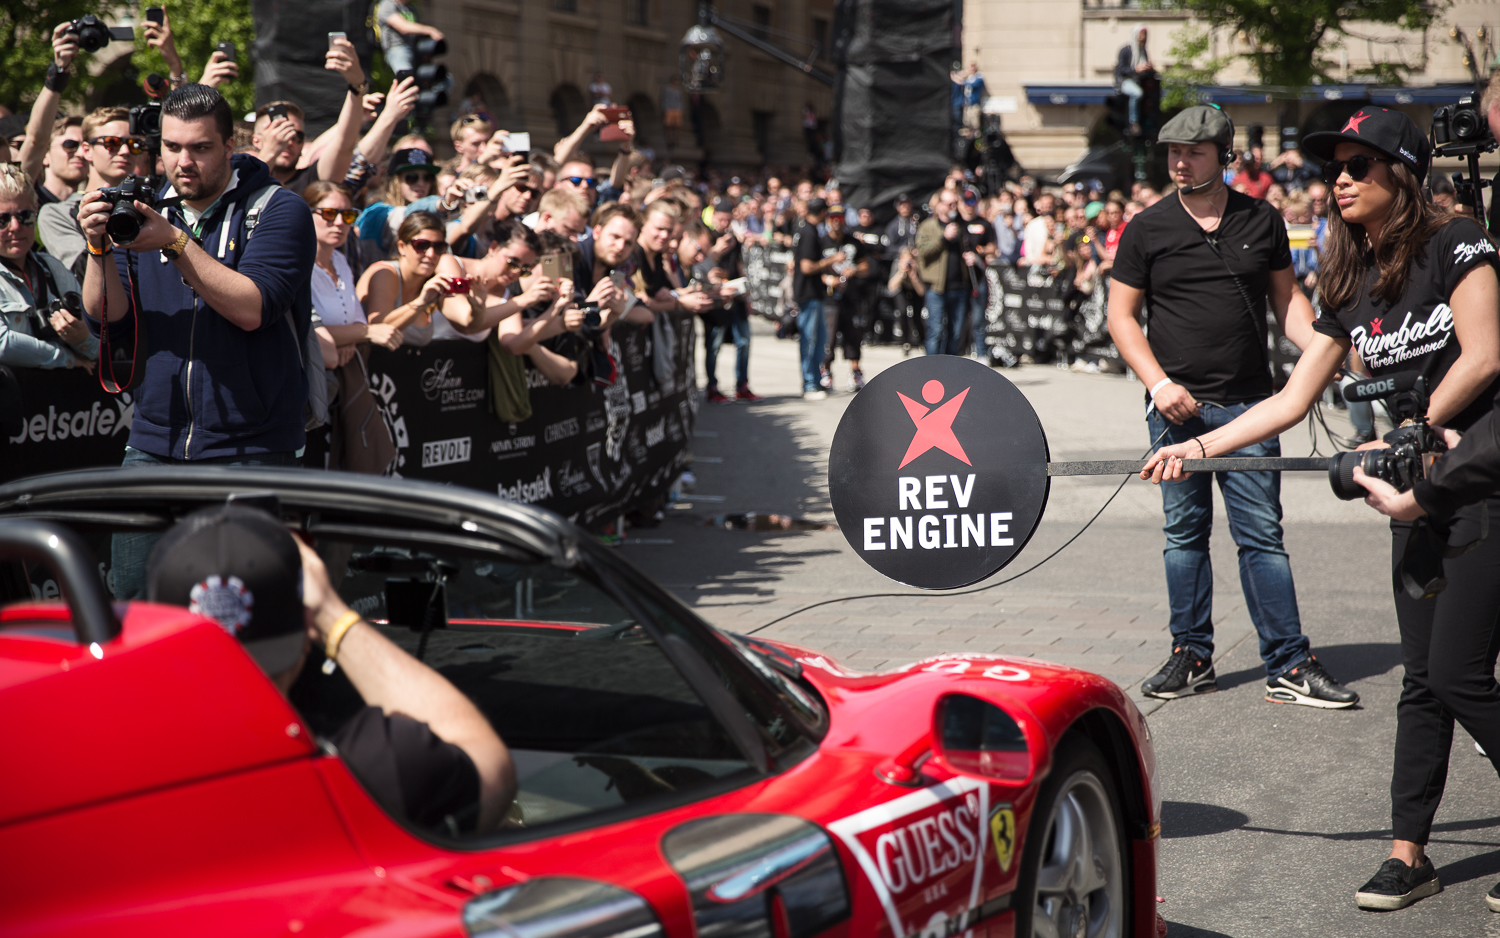 SMoores_15-05-24_Gumball 3000 Day 1_0819-Edit.jpg